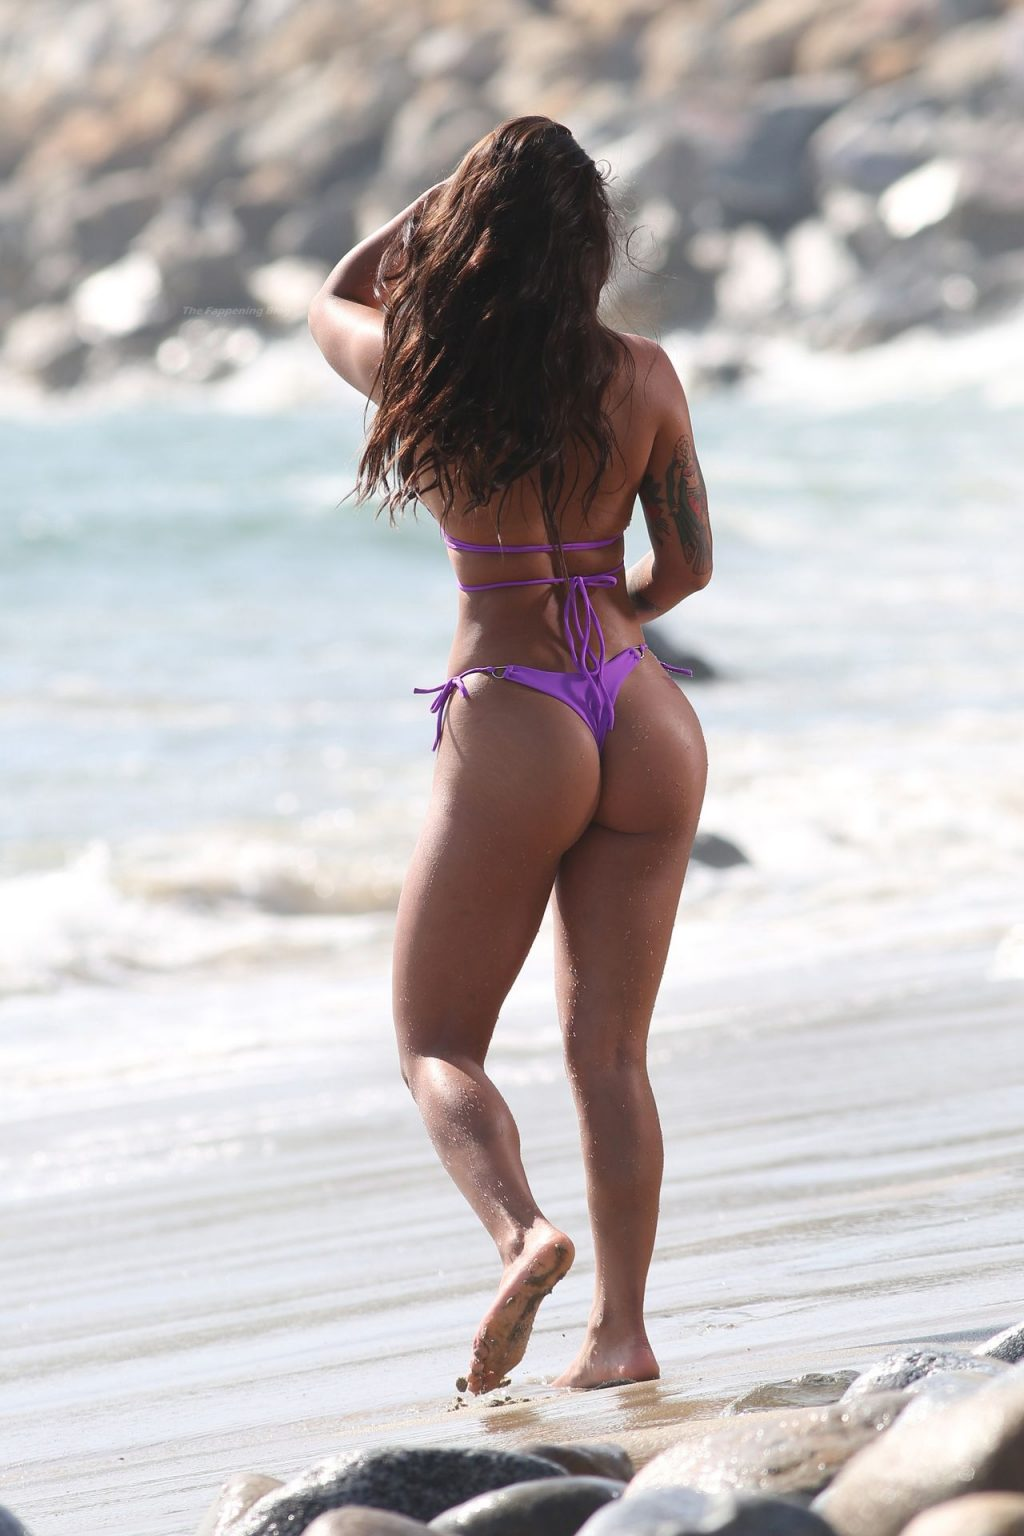 Maria Gomez Poses Up a Storm as She Shoots a New Advert on the Beach in Malibu (48 Photos)